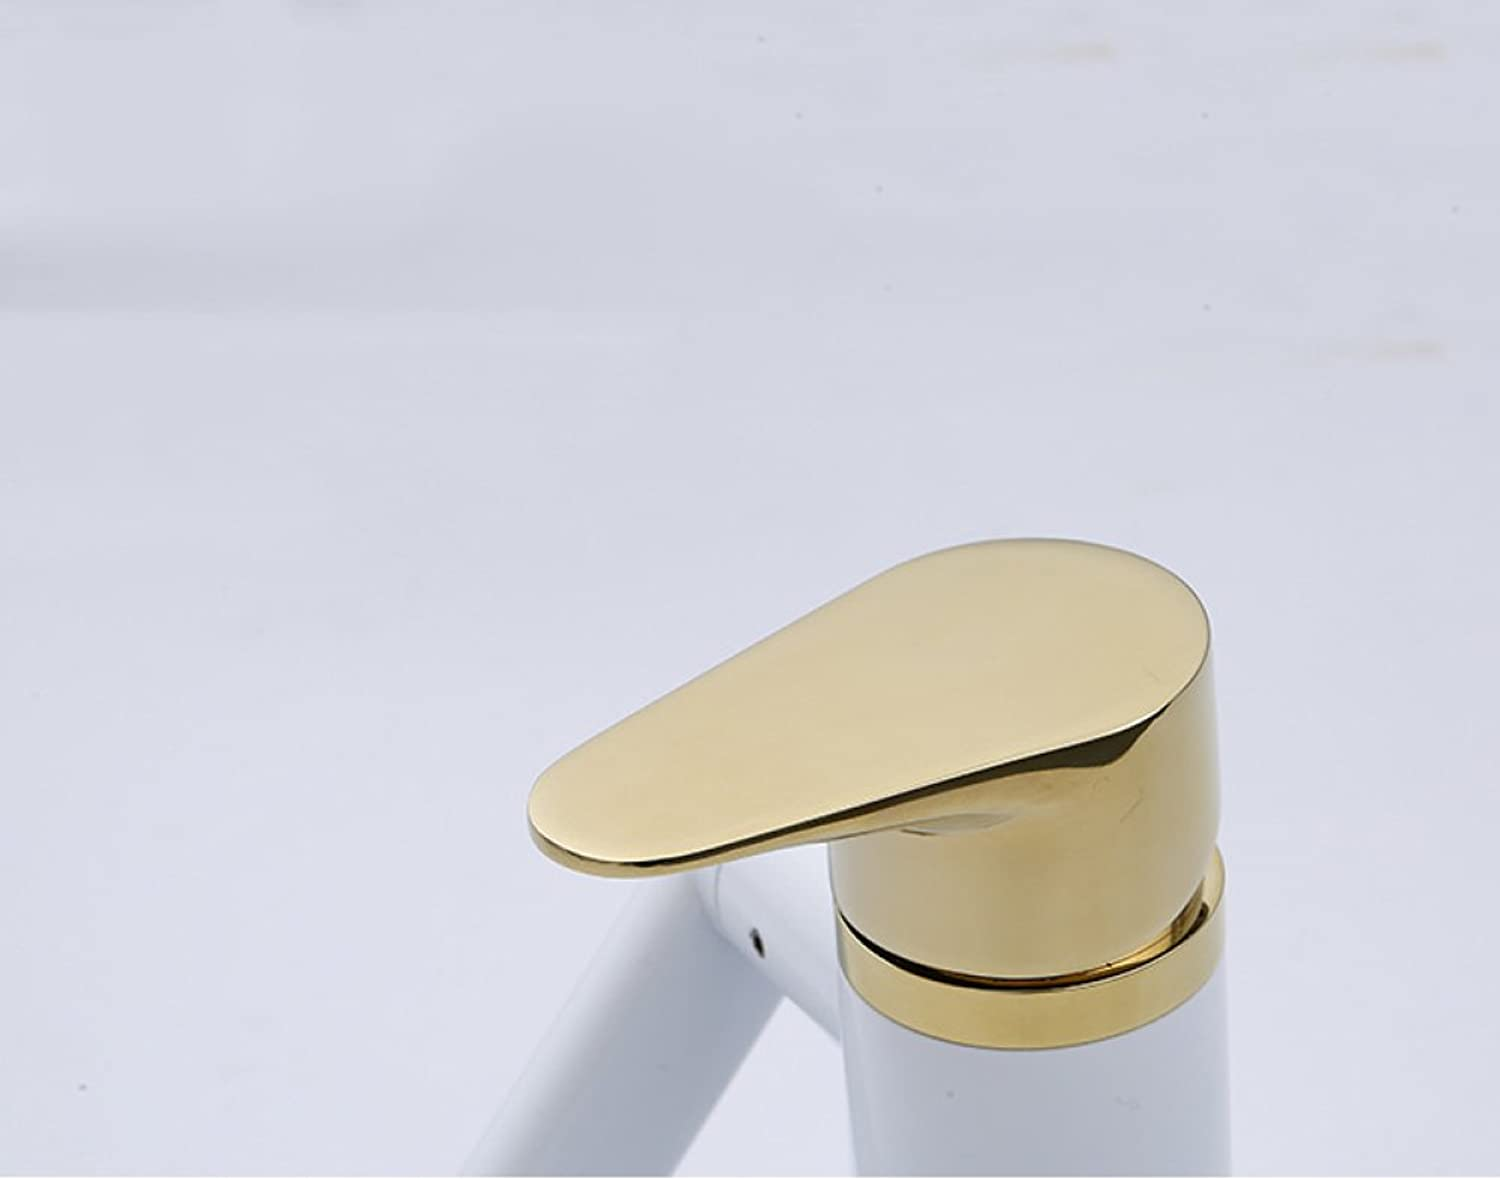 GZF Bathroom Sink Taps Faucet white + gold basin hot and cold single hole tap European above counter basin Maneki faucet